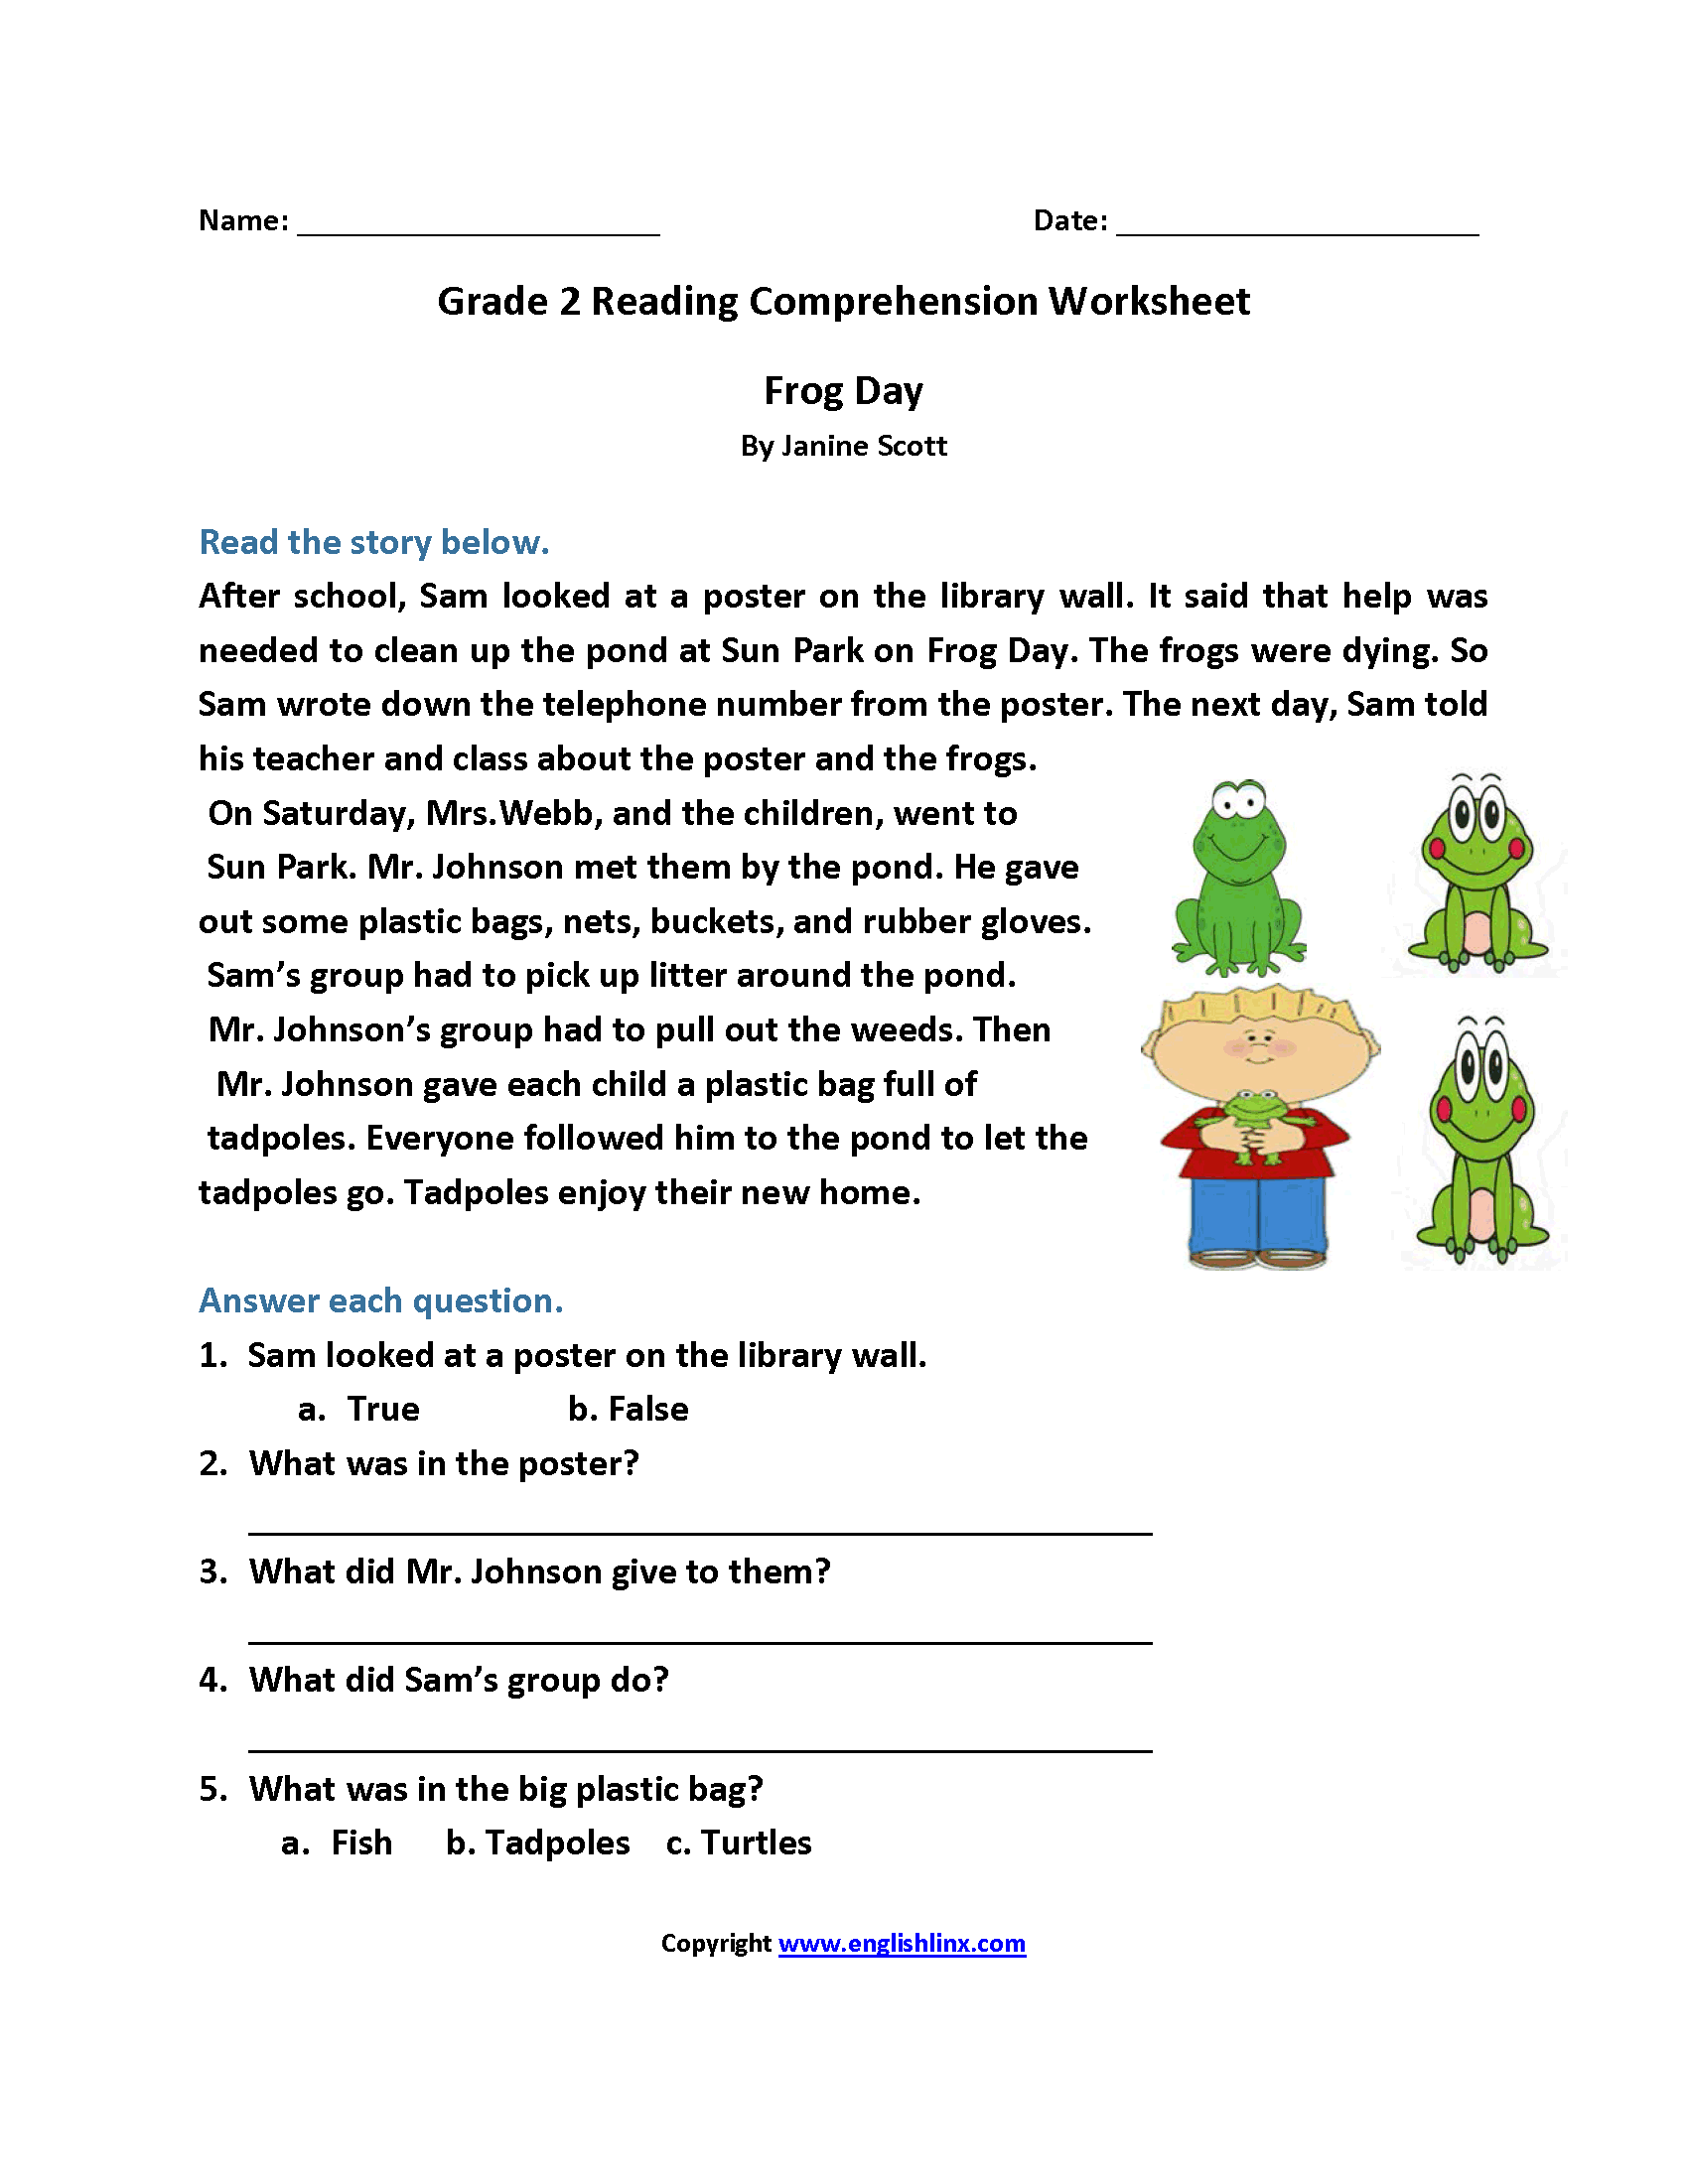 Worksheets Reading Comprehension Worksheets For 2nd Grade reading worksheets second grade worksheets